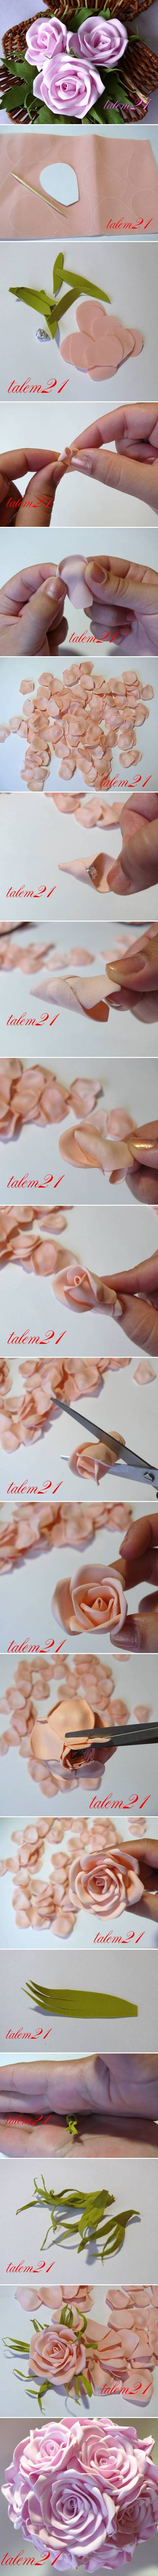 How To Make Fabulous Rose flowers step by step DIY tutorial instructions